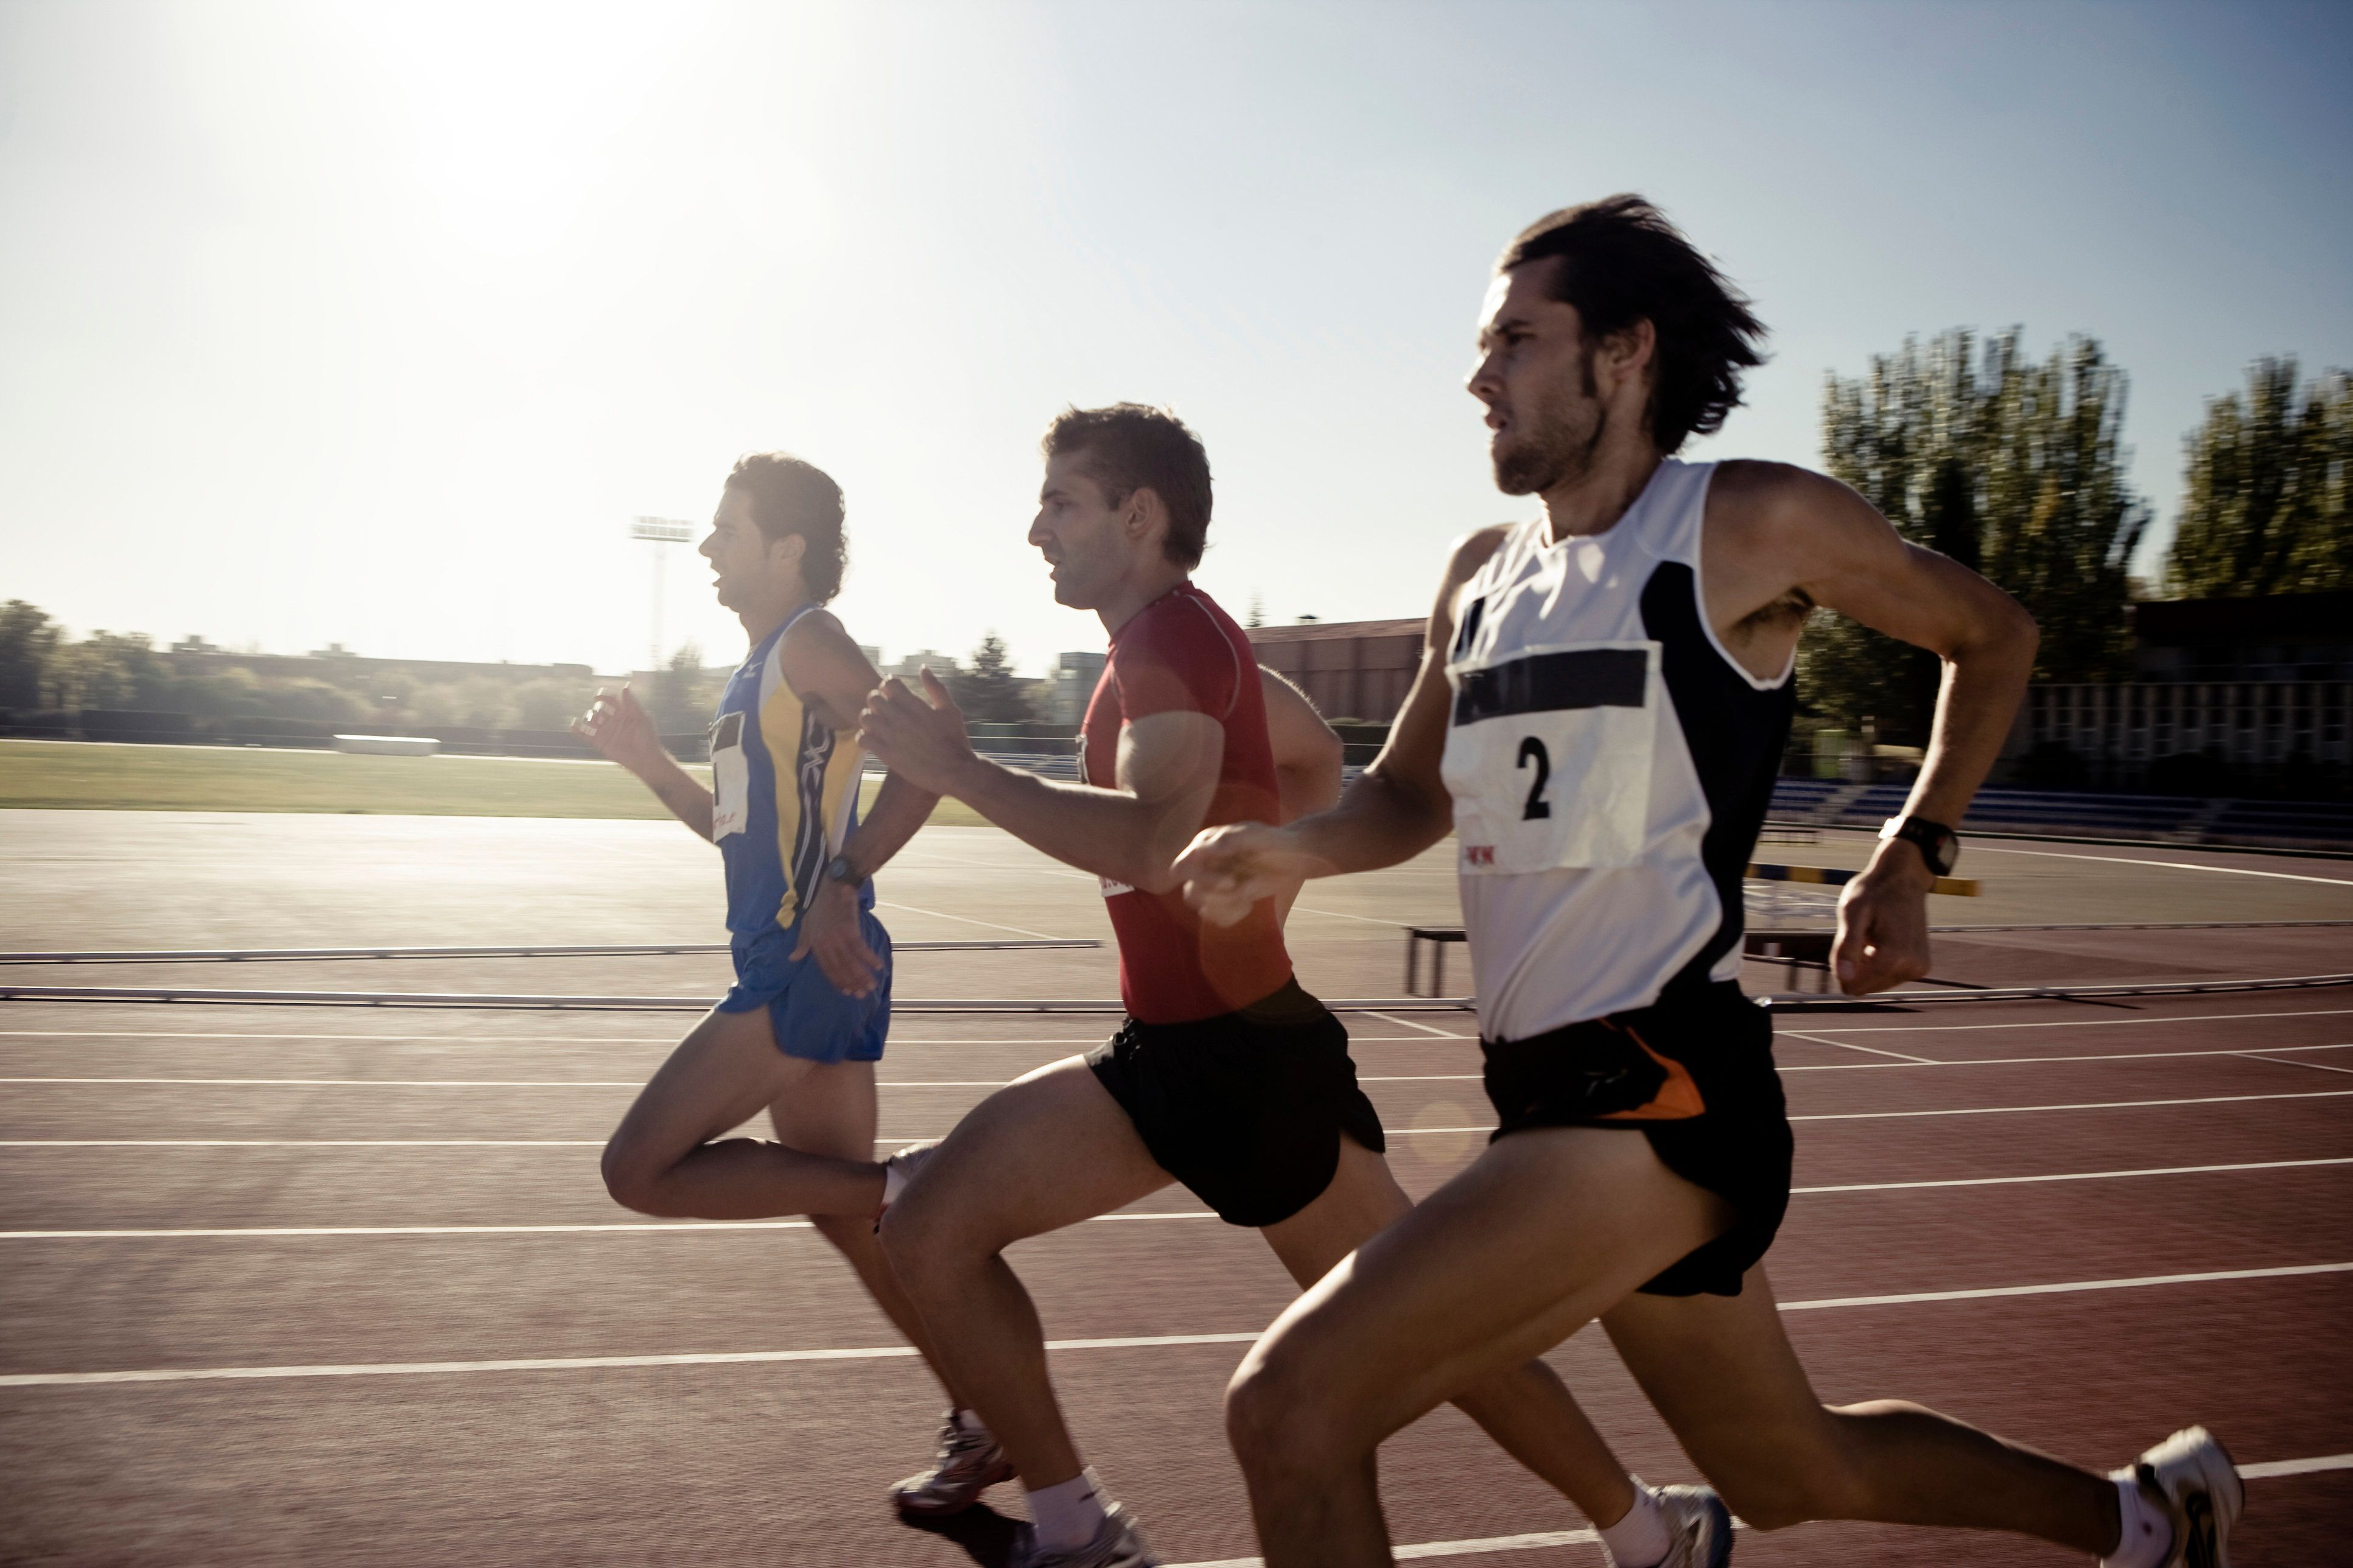 Male athletes running on race track, side view